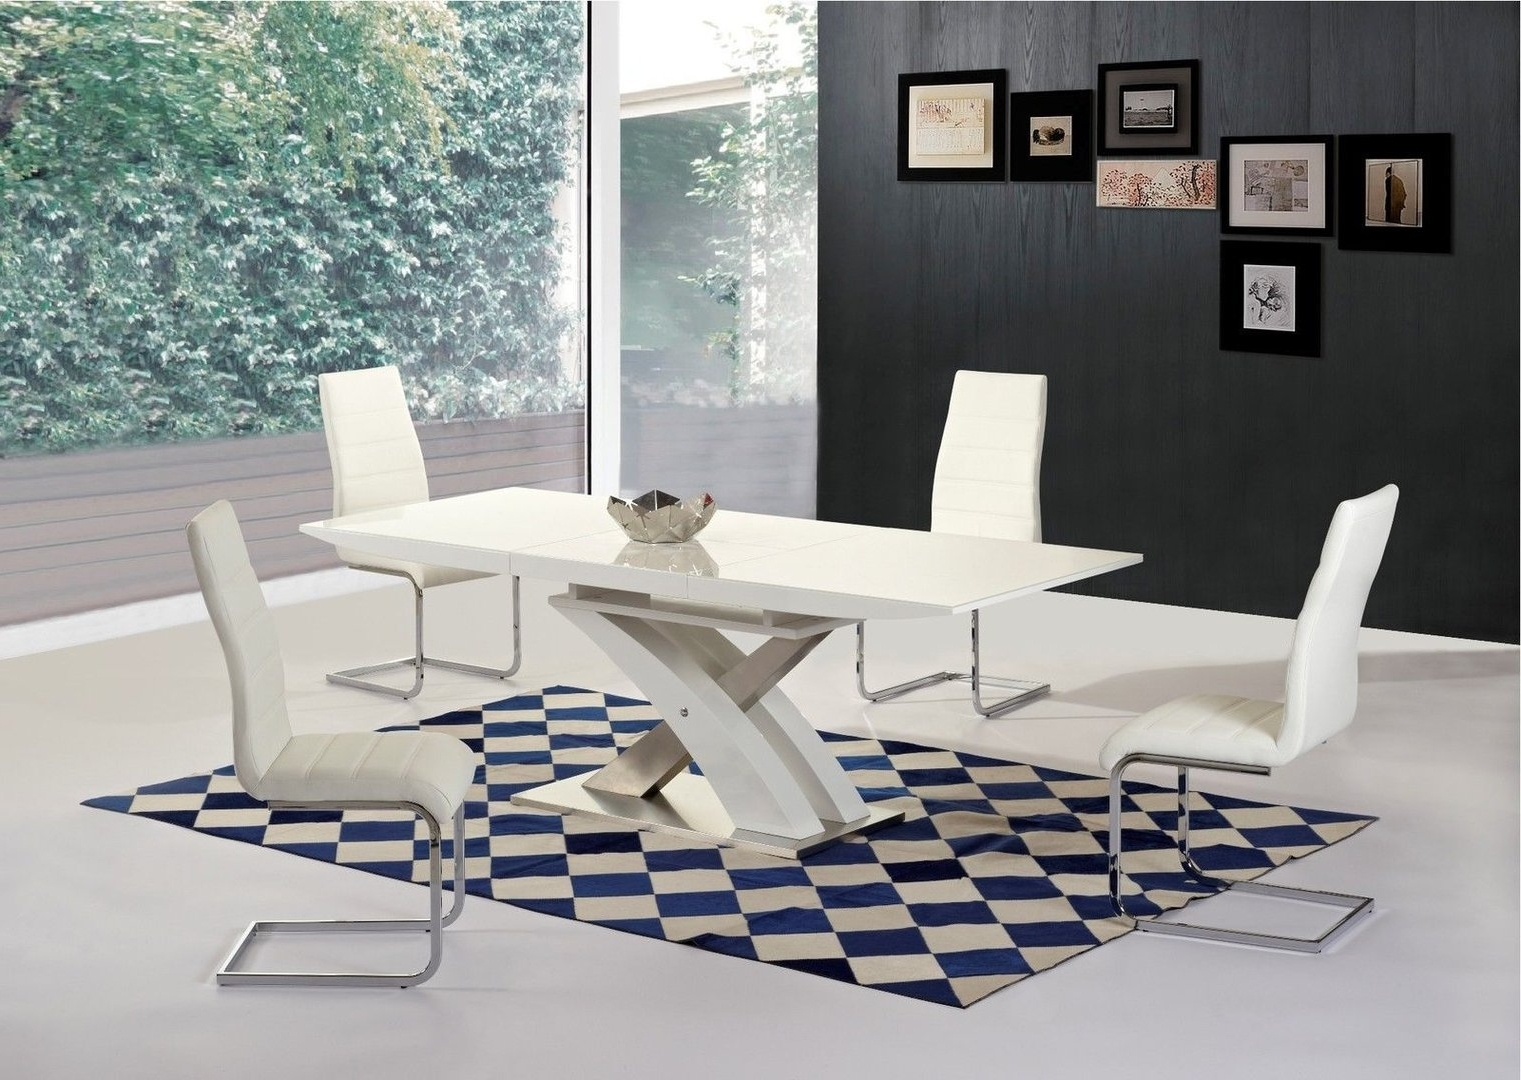 White Gloss Extendable Dining Tables Intended For Well Known White H Gloss Extending Glass Dining Table & 8 Chairs  Homegenies (View 19 of 25)